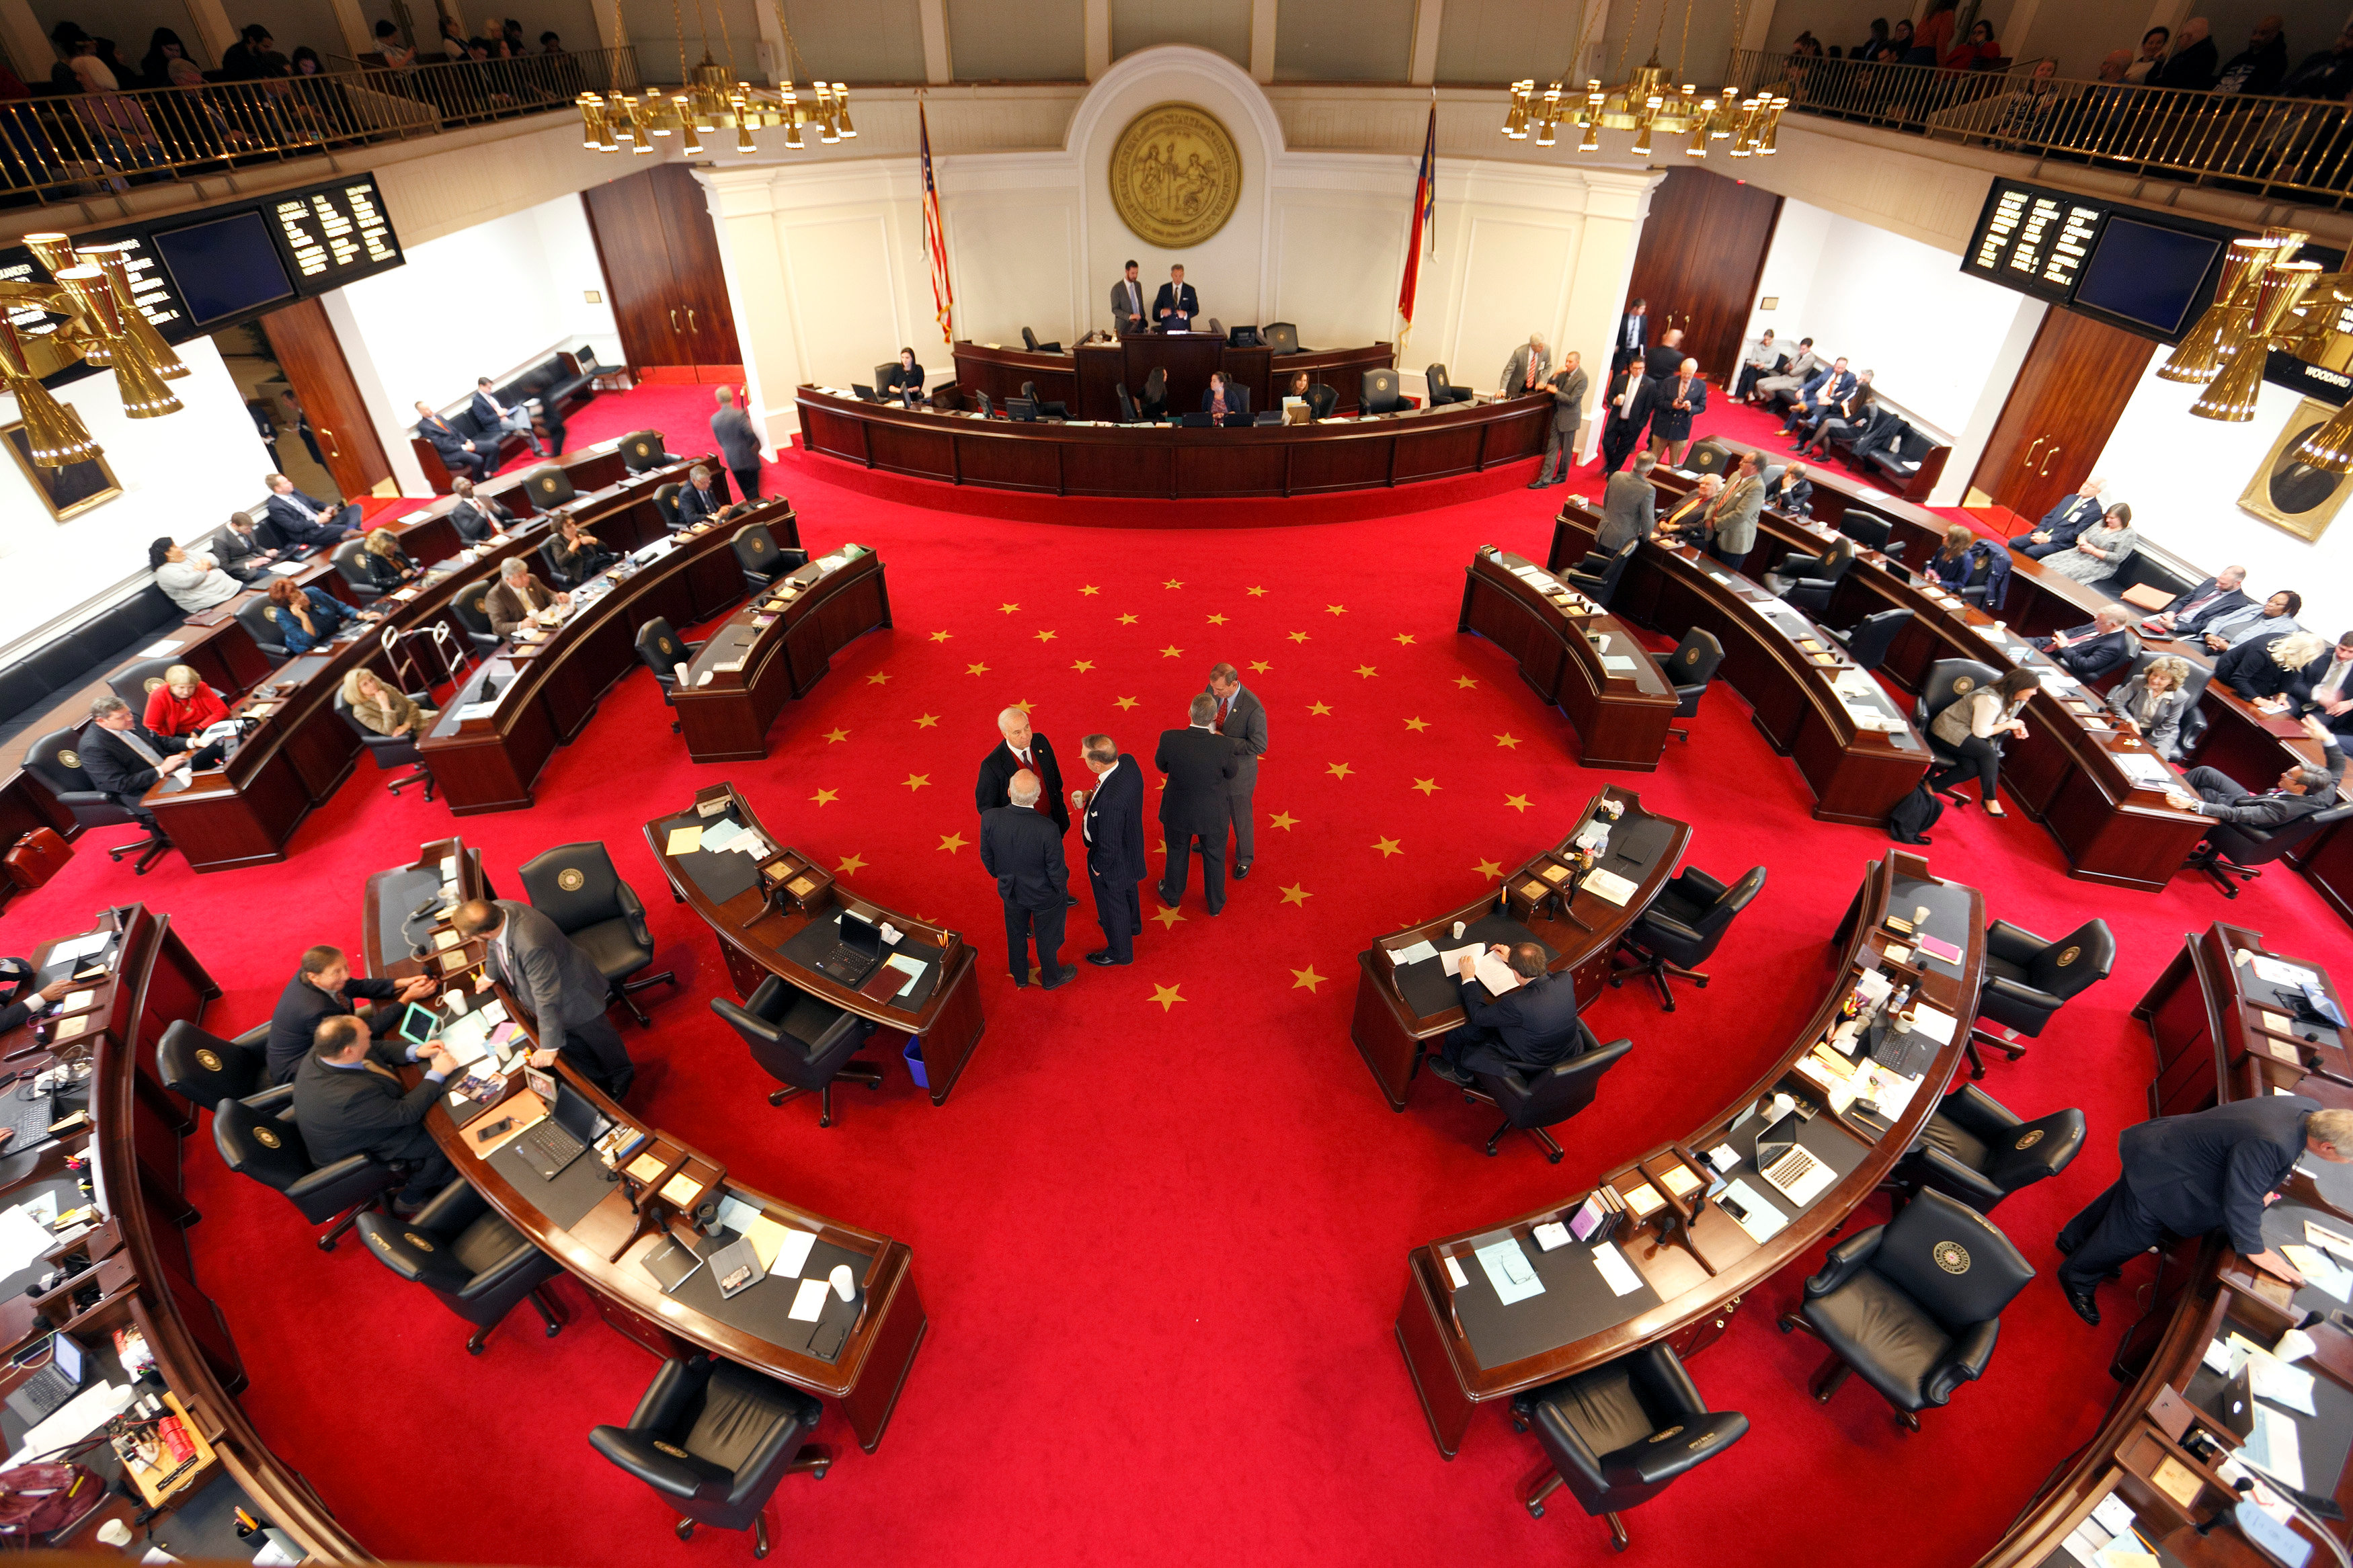 Lawmakers confer during a negotiations on the floor of North Carolina's State Senate chamber as they meet to consider repealing the controversial HB 2 law